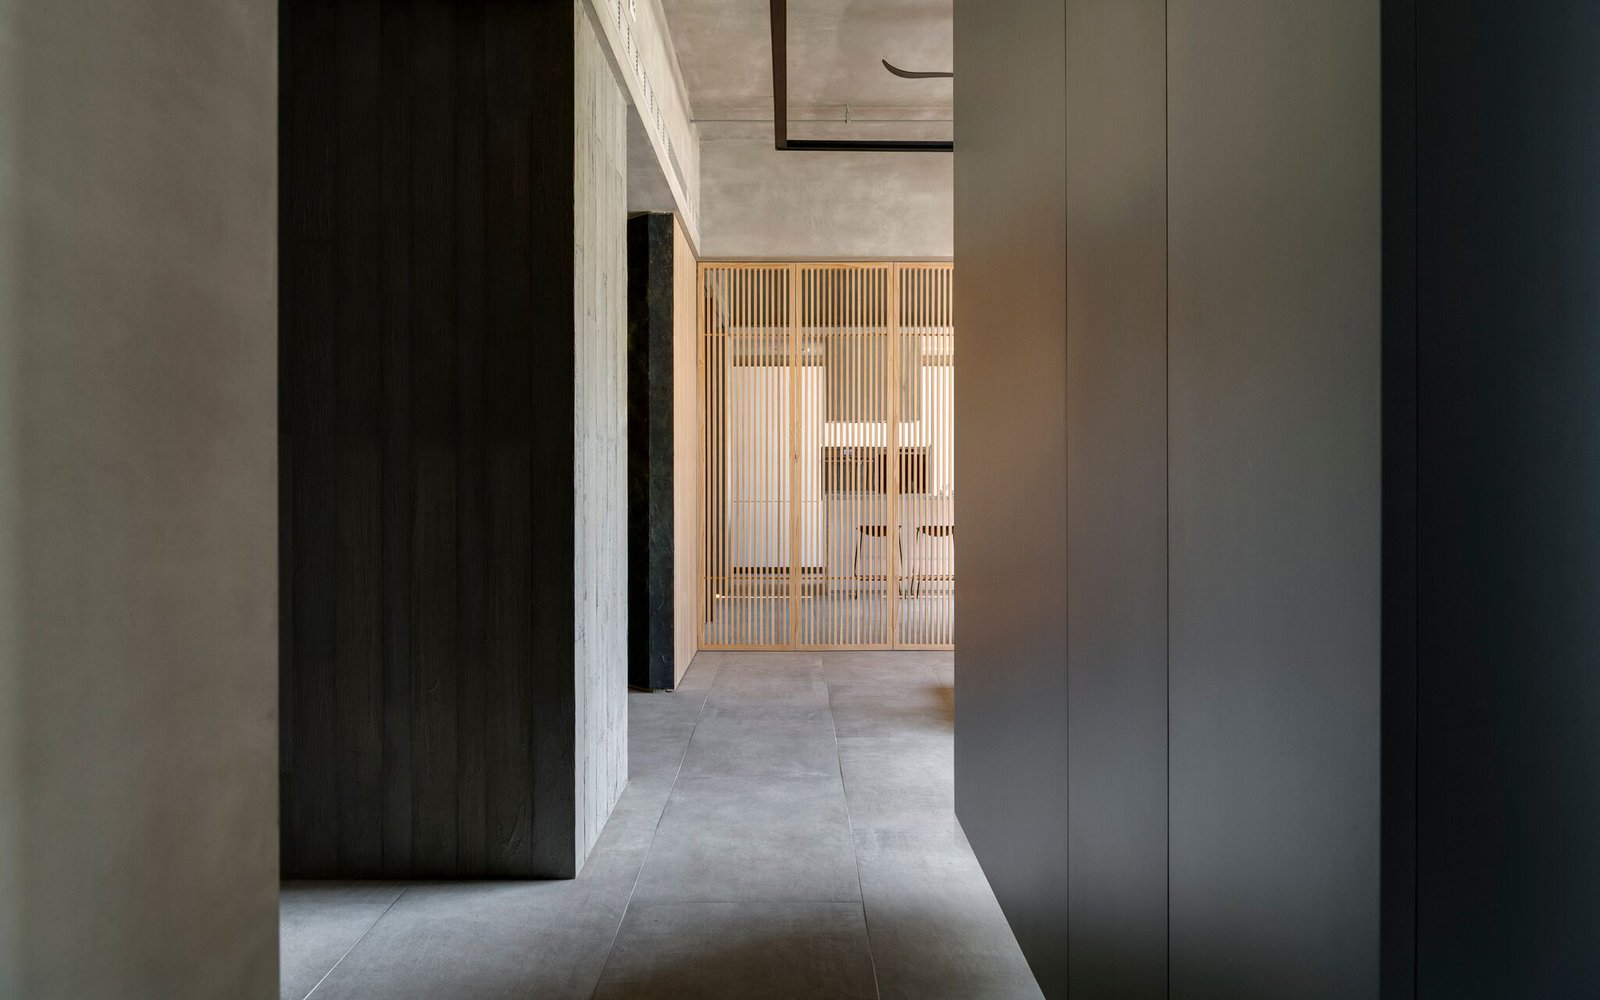 Hallway and Concrete Floor Concrete and warm wood merge together to create a tranquil setting throughout the home.     Photo 10 of 16 in A Couple Embrace Wabi-Sabi Design to Travel Back to the Past